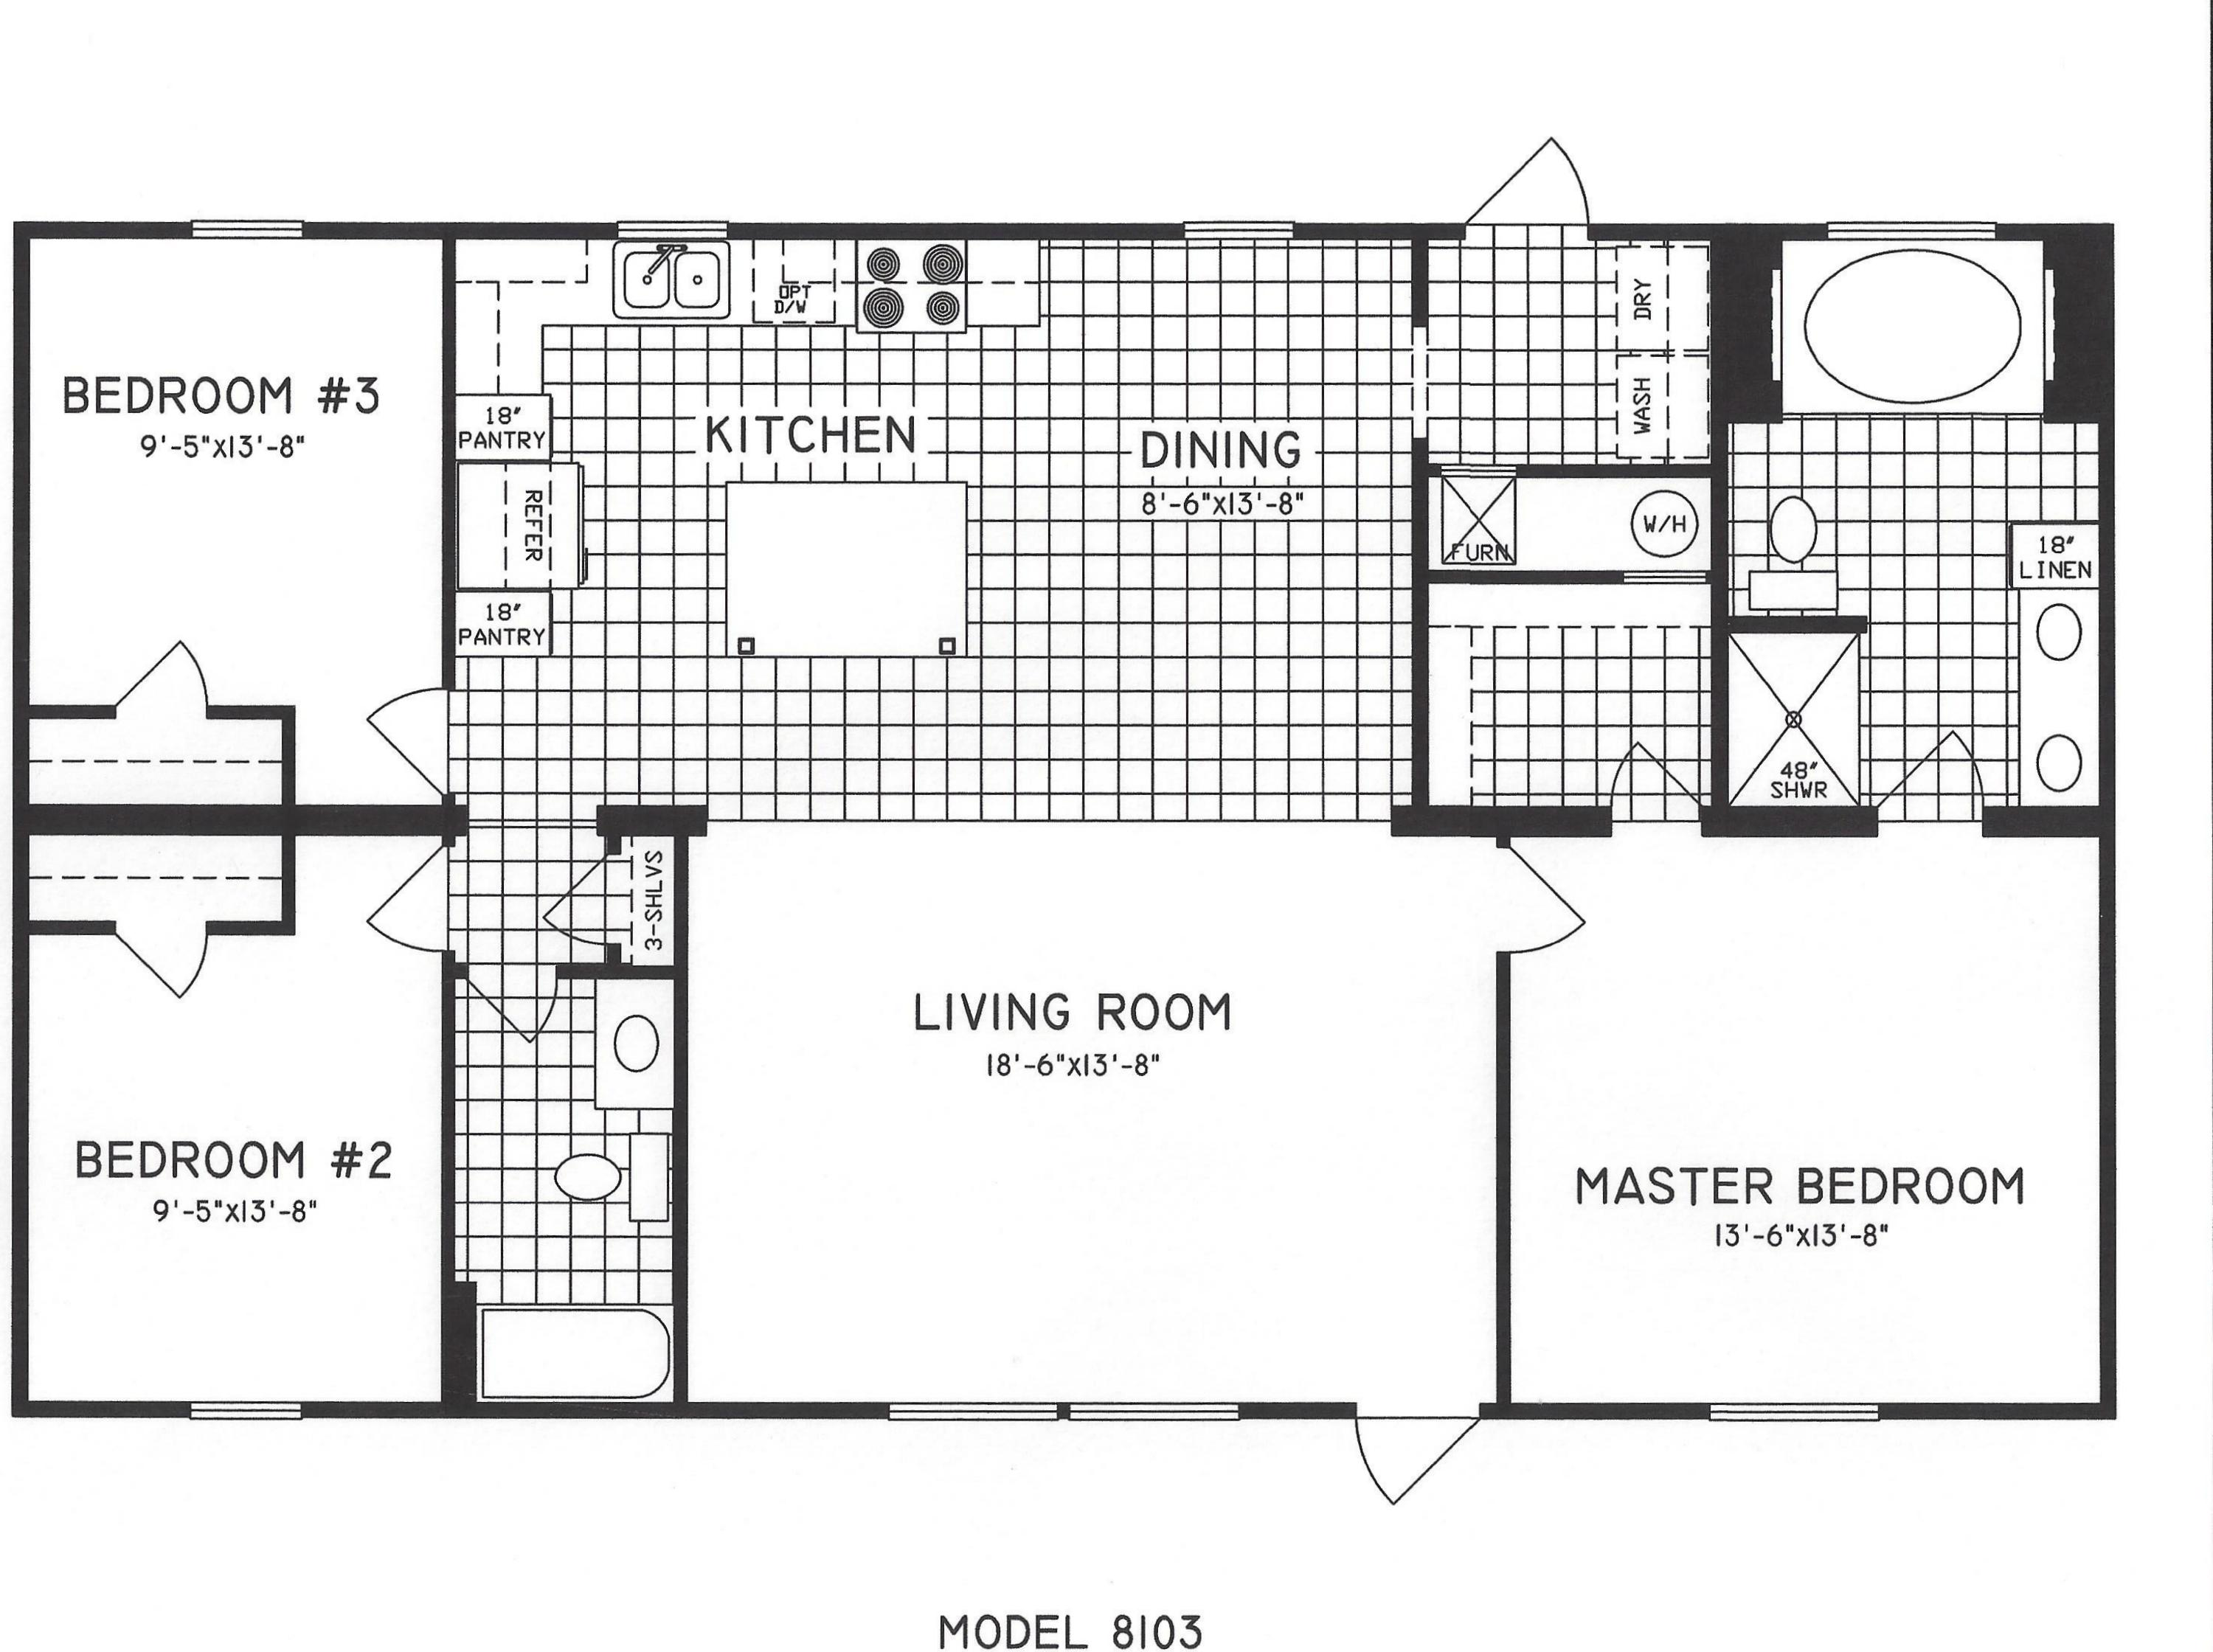 3 Bed 2 Bath Mobile Home Floor Plans - ^